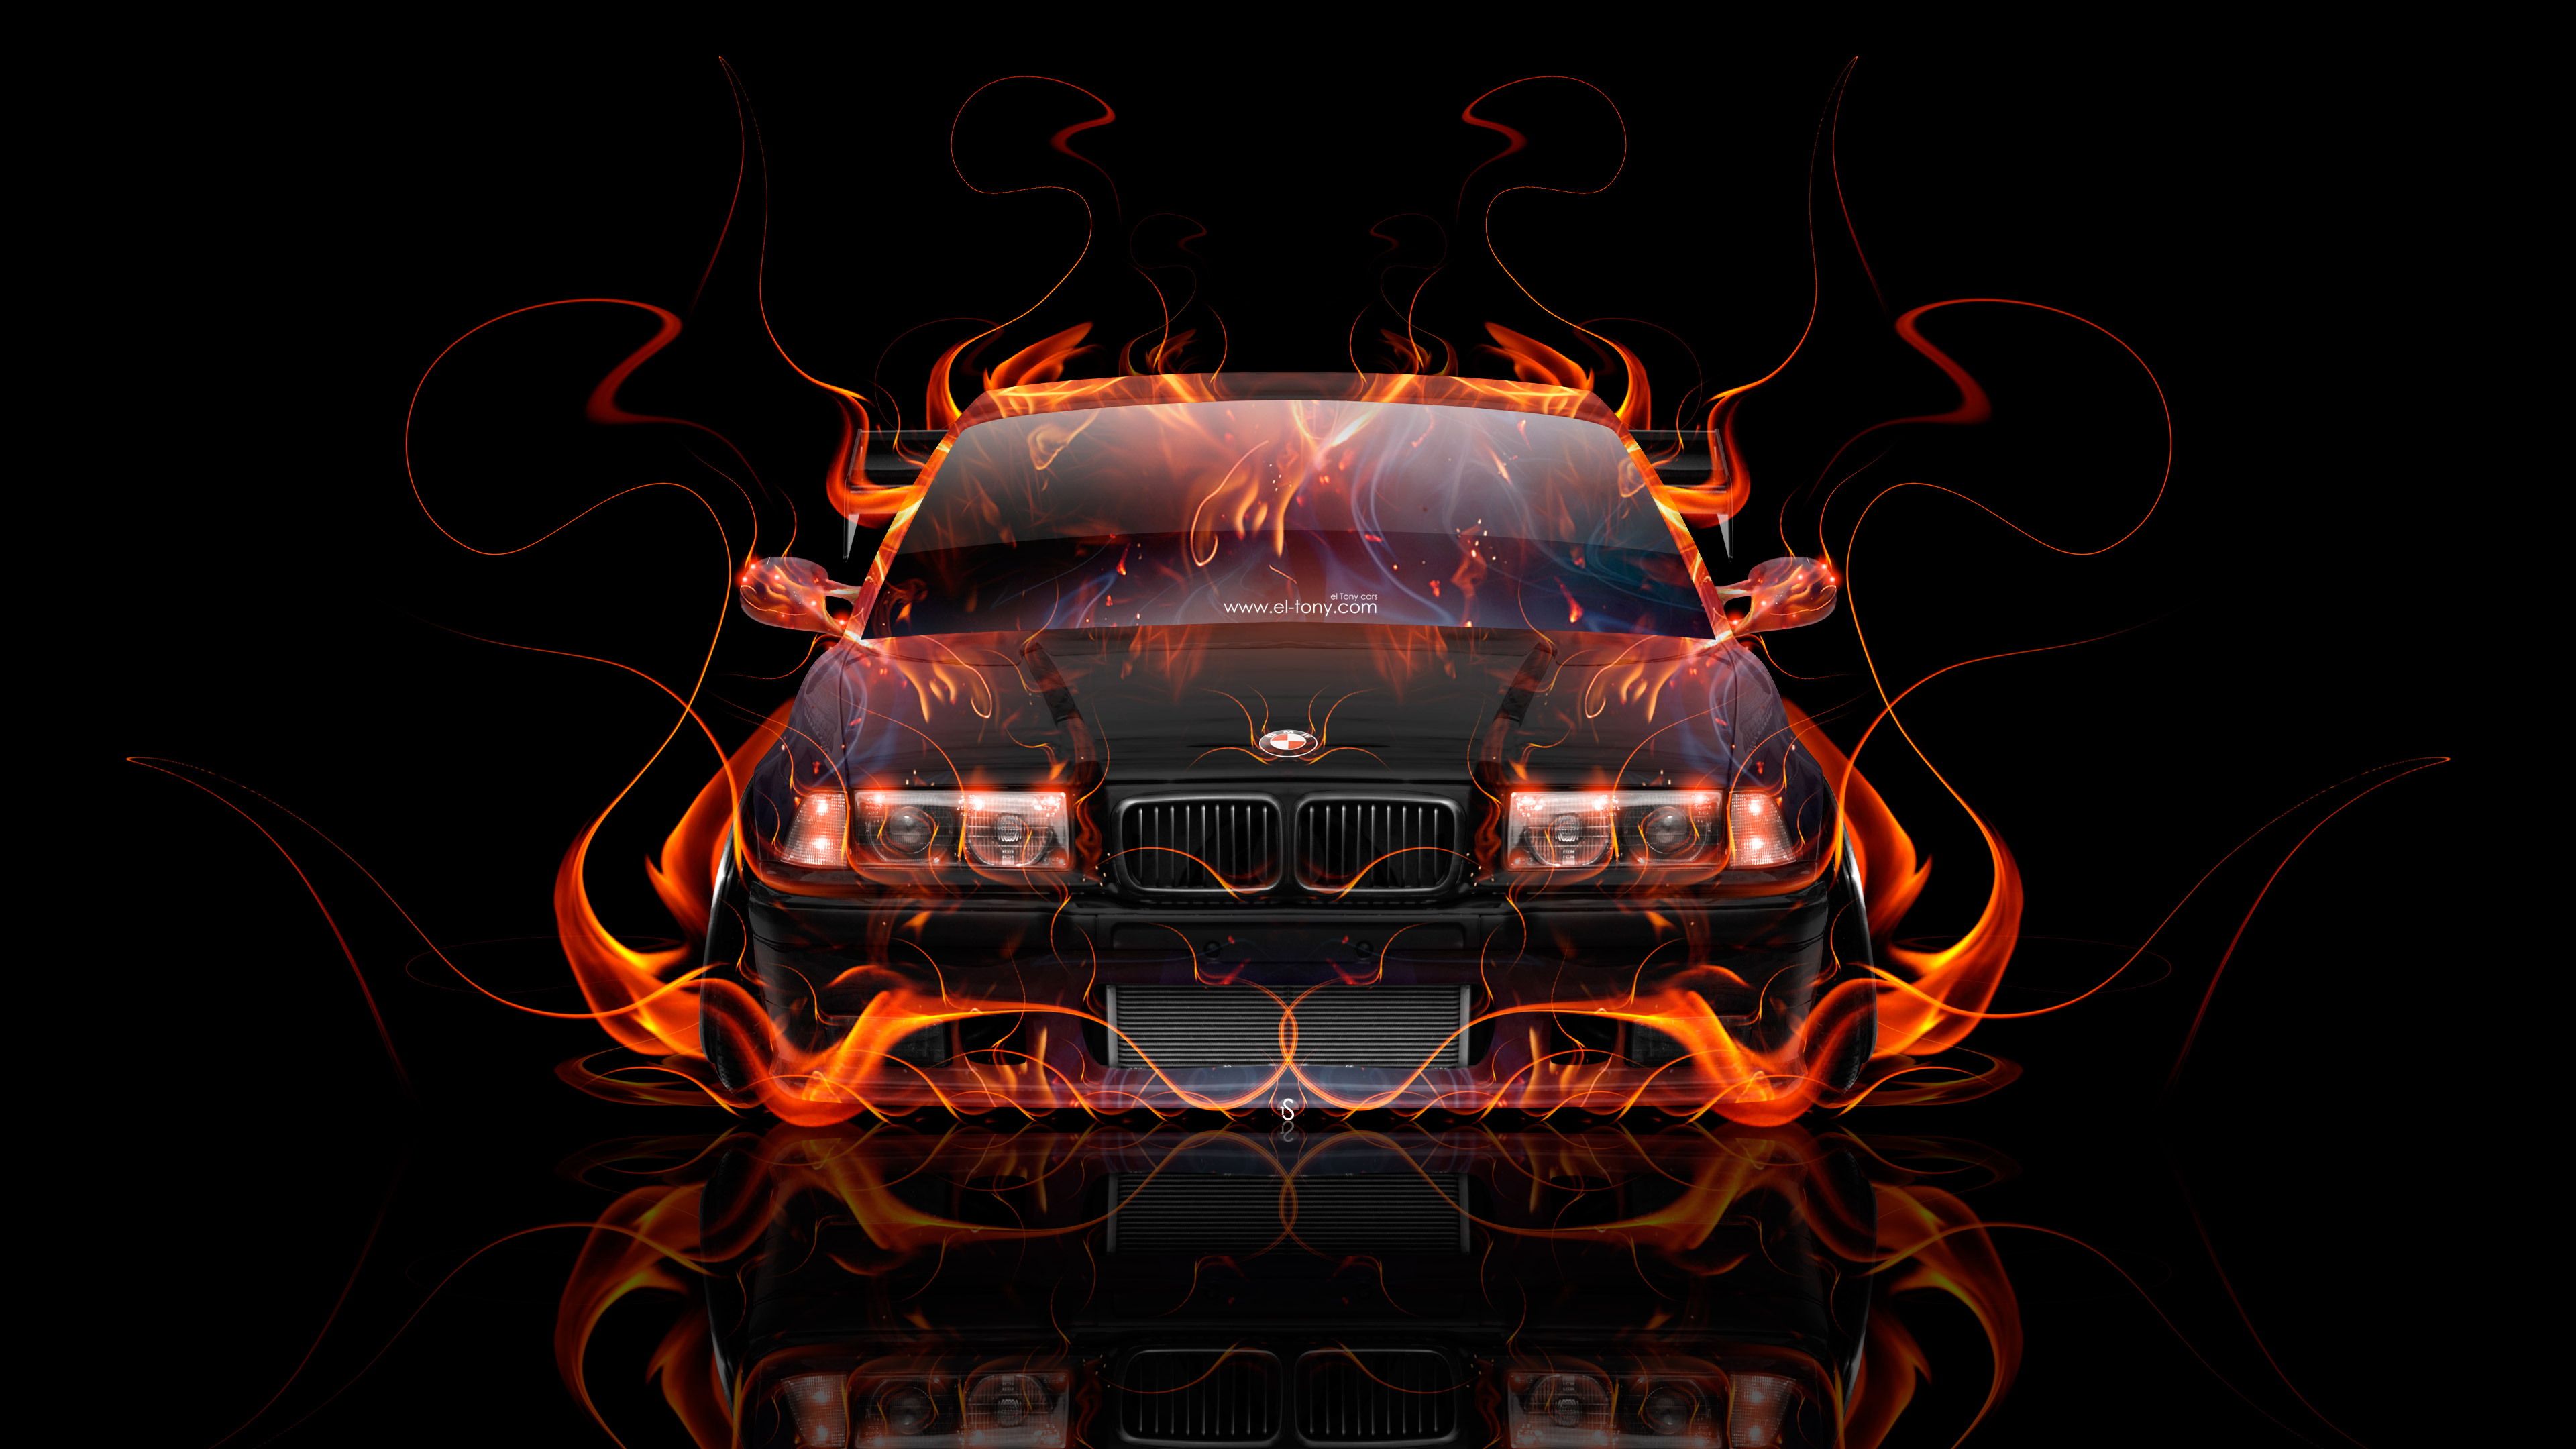 Exceptionnel Honda Accord JDM Tuning Back Fire Car 2014 · BMW M3 E36 Coupe Tuning Front  Super Fire Flame Abstract Car 2017